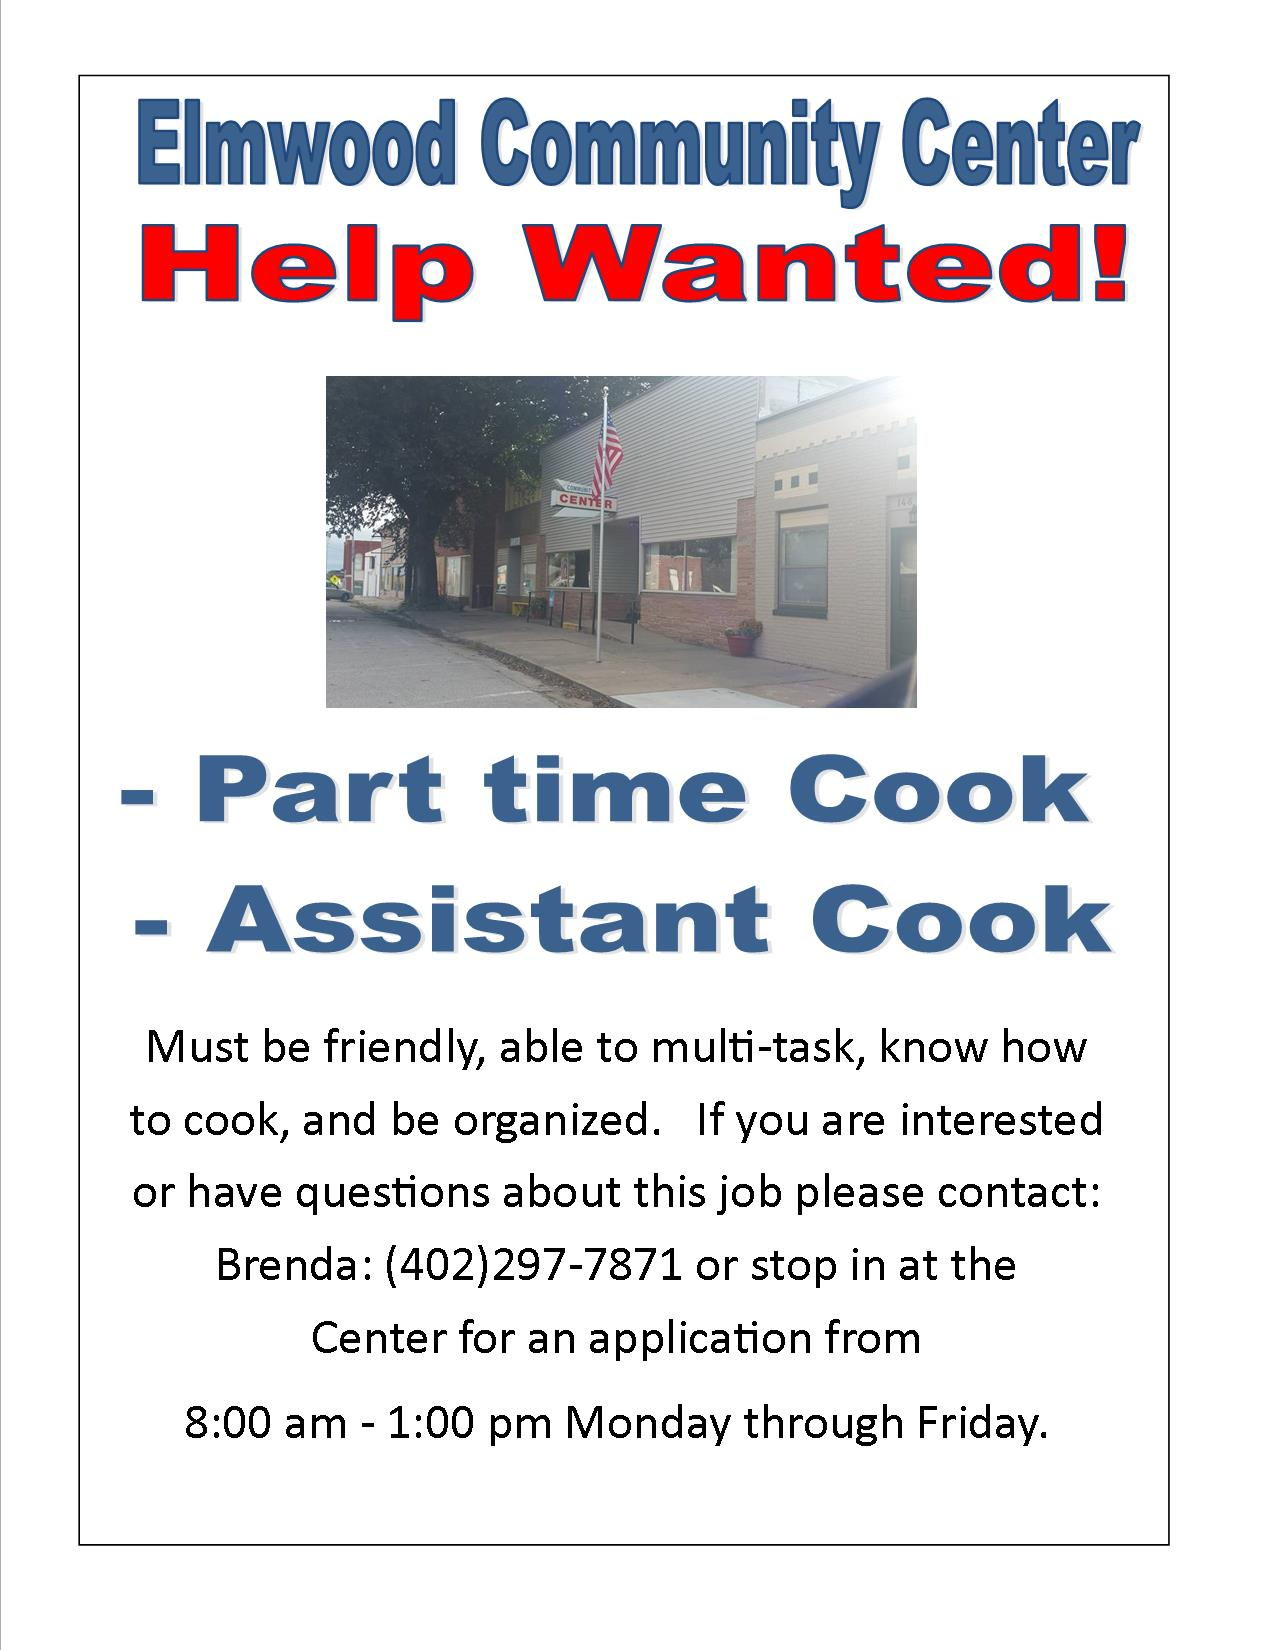 ECC Help Wanted 04 14 2019